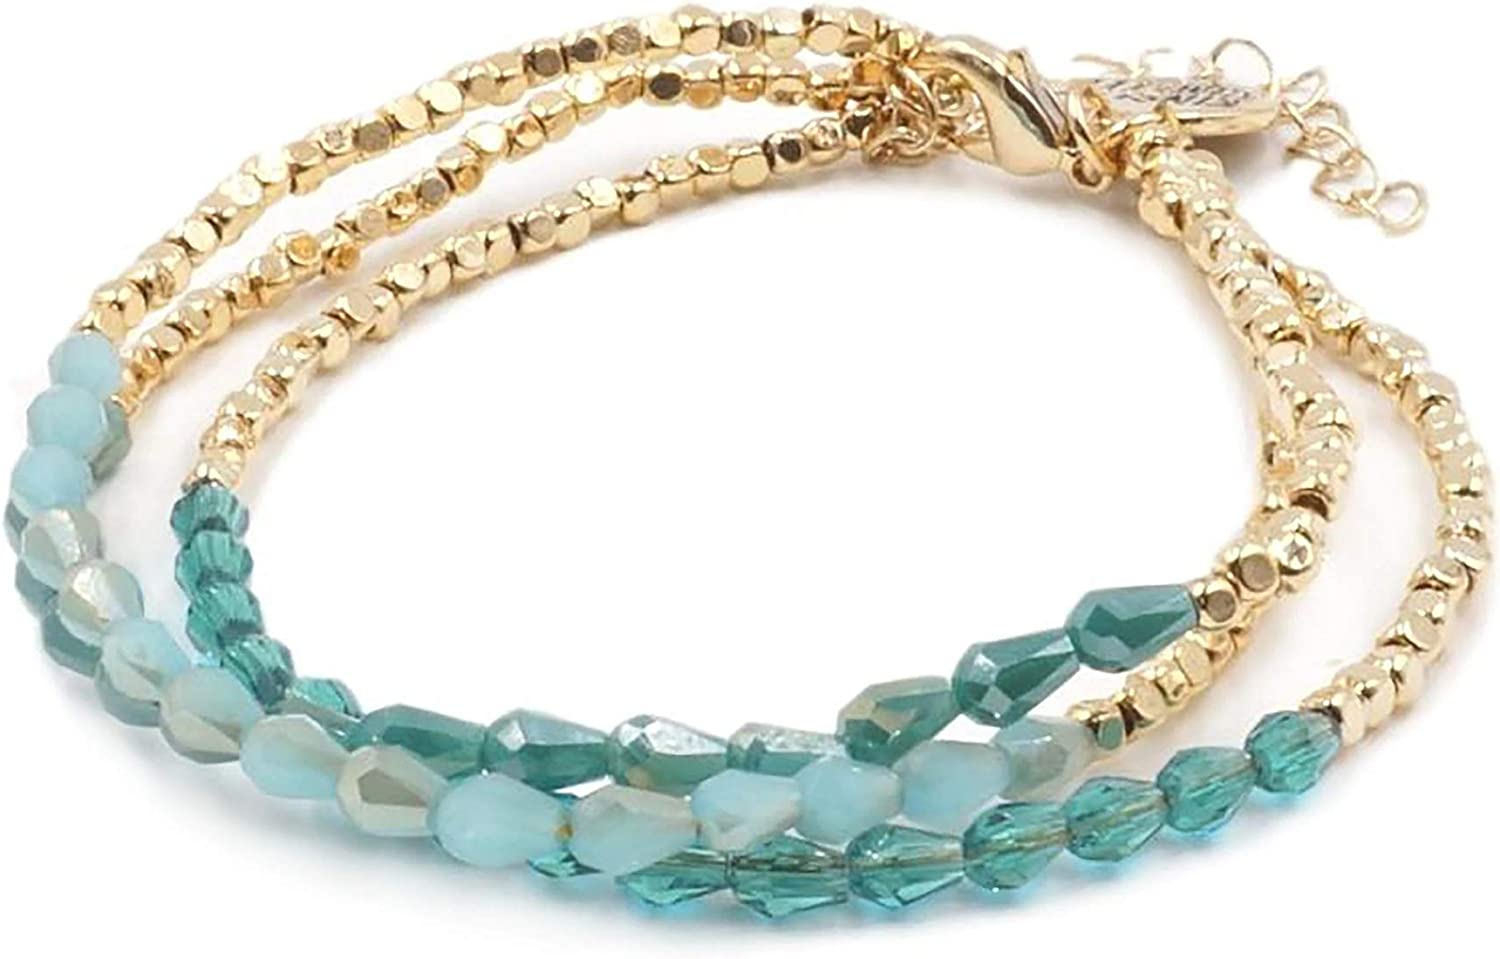 Kinsley Armelle Spring 25% OFF new work one after another Trinity Collection - Azure Bracelet